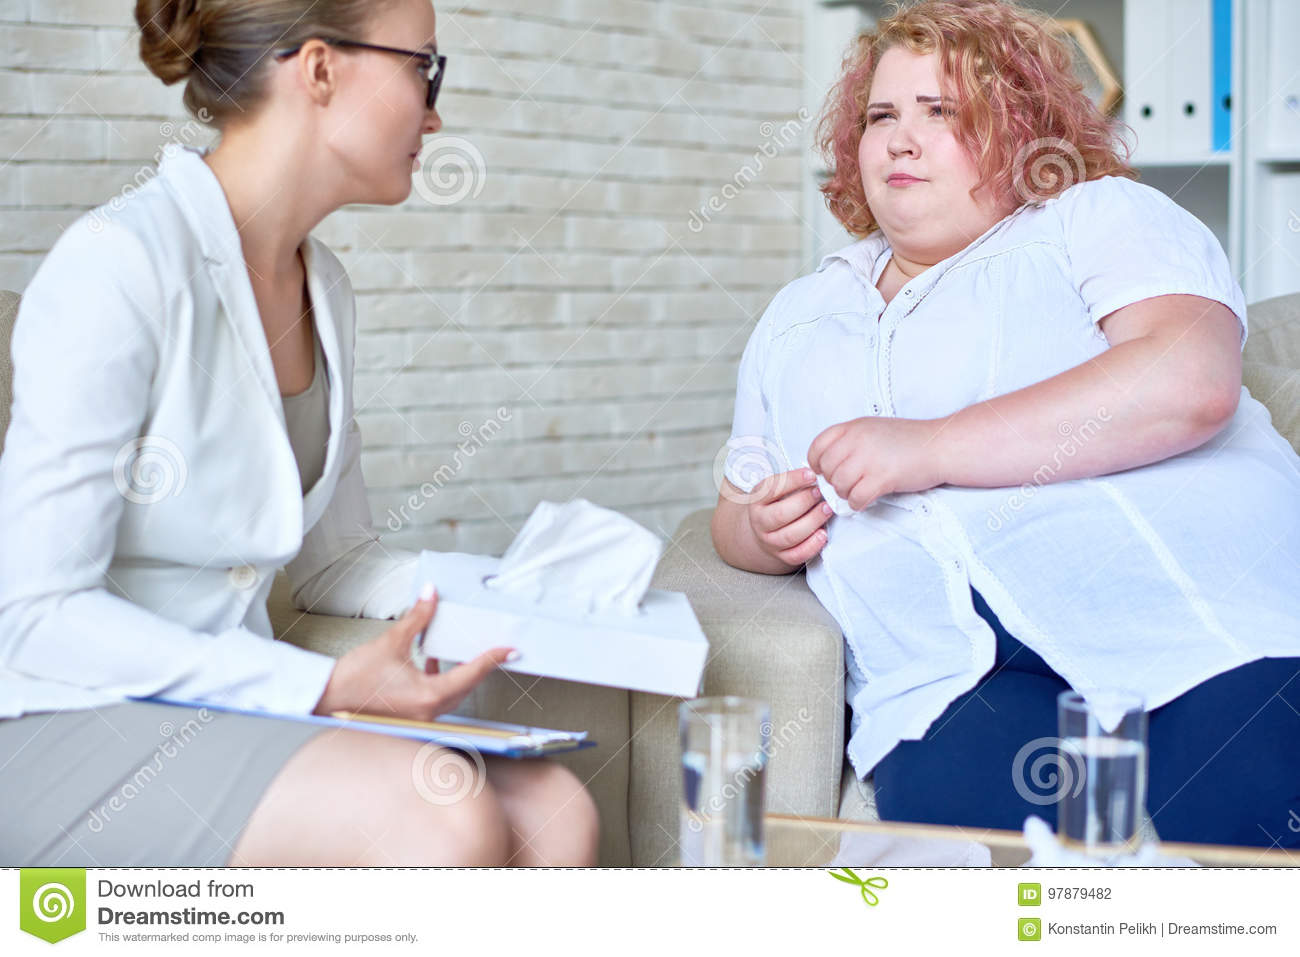 Obese Young Woman Discussing Eating Disorder with Psychiatrist